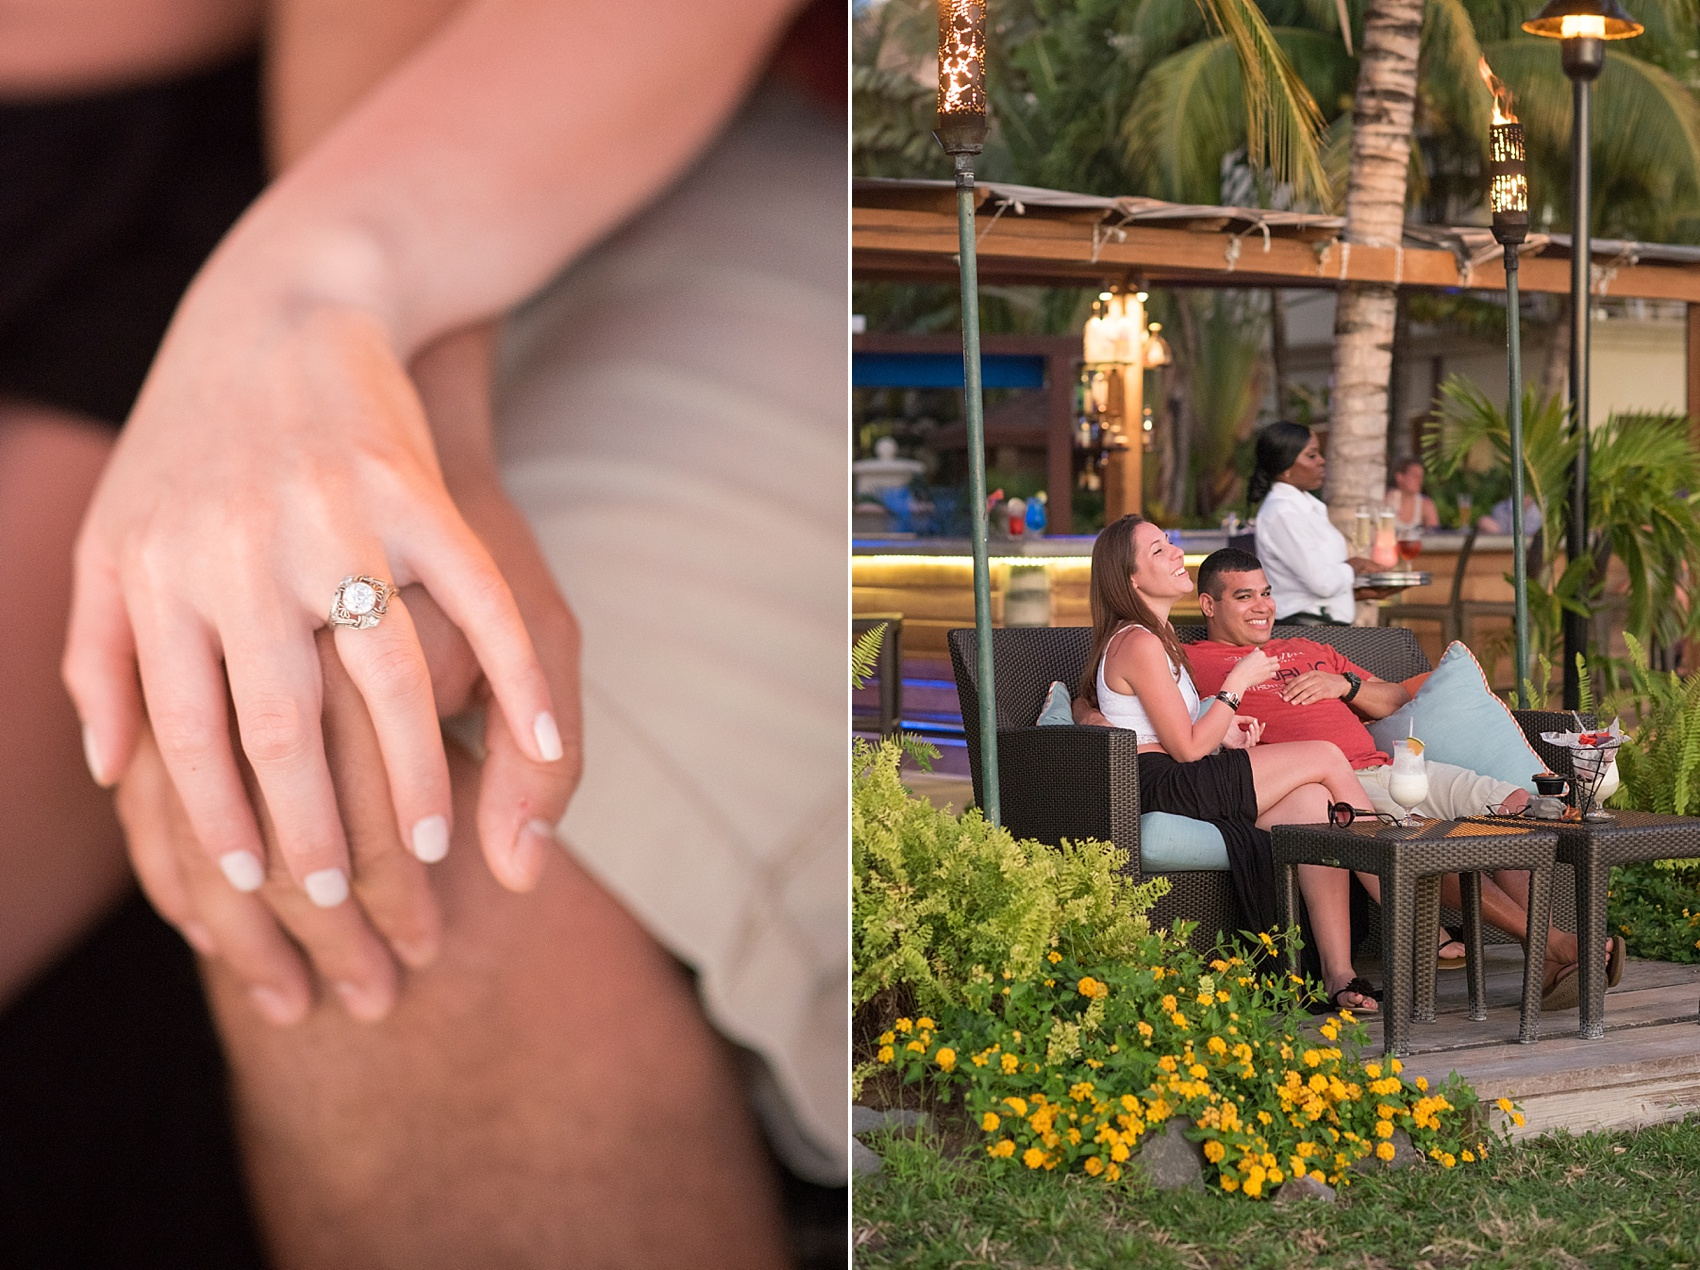 Vintage antique white gold diamond engagement ring. St. Lucia Proposal ideas - beachside romance at an oceanfront dinner at The Landings resort.  Photos by destination wedding photographer Mikkel Paige Photography.